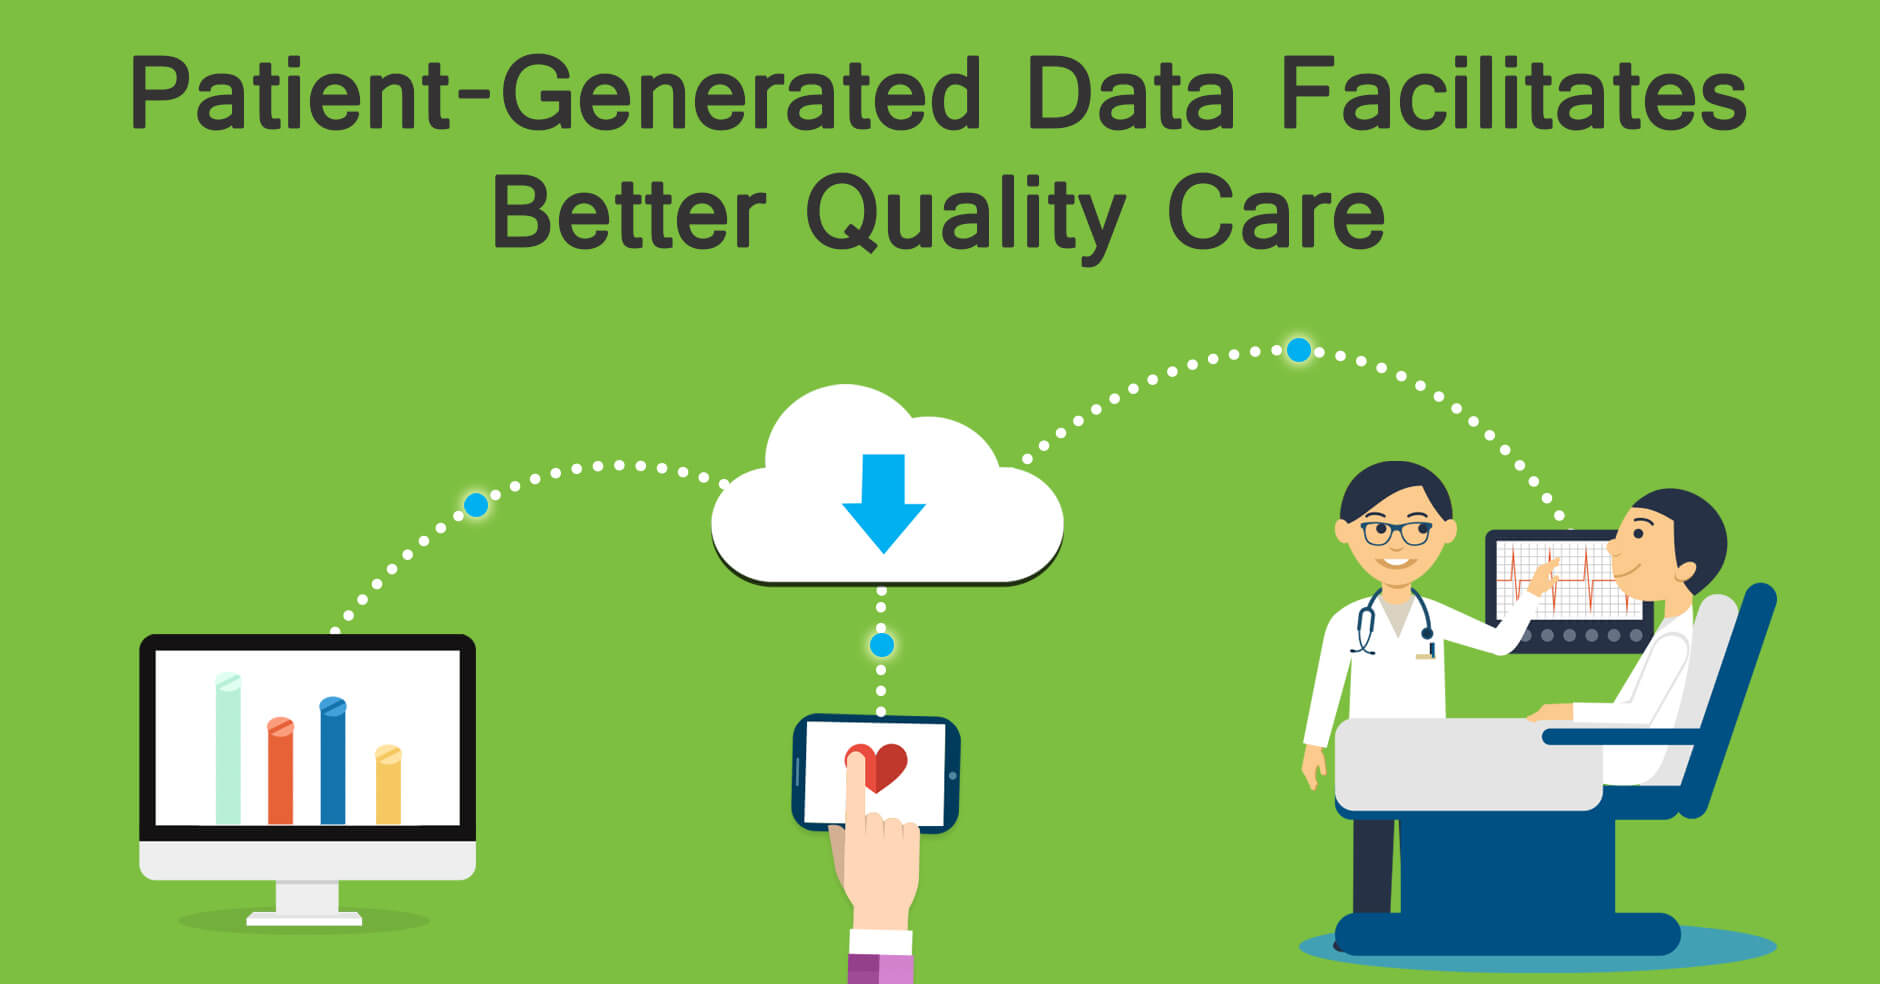 Patient-Generated Data Facilitates Better Quality Care